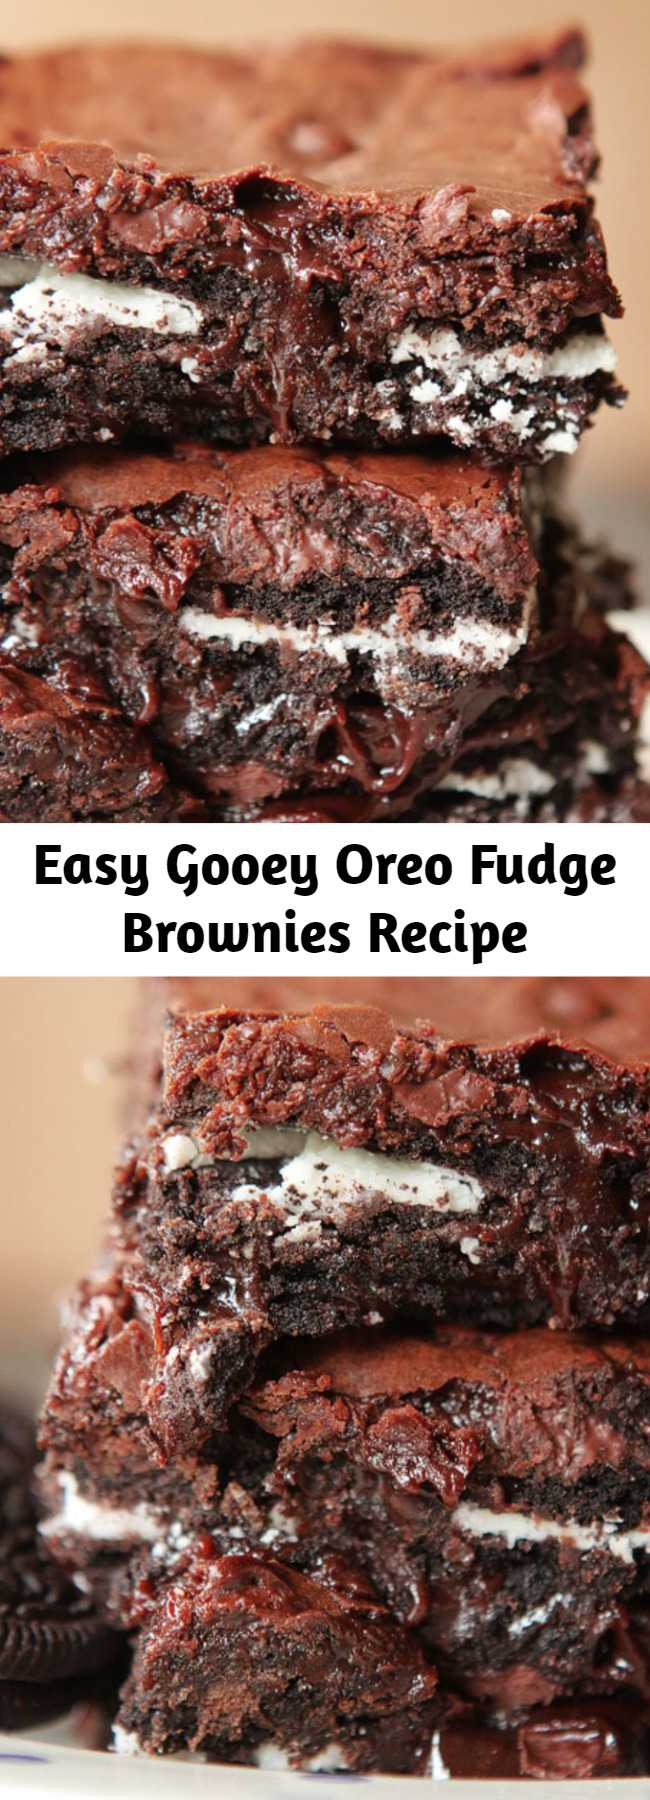 Easy Gooey Oreo Fudge Brownies Recipe - This easy Oreo Fudge Brownies recipe seriously makes the most chewy, fudgy brownies ever! If you love gooey and fudgy brownies, you have to try this trick ASAP.